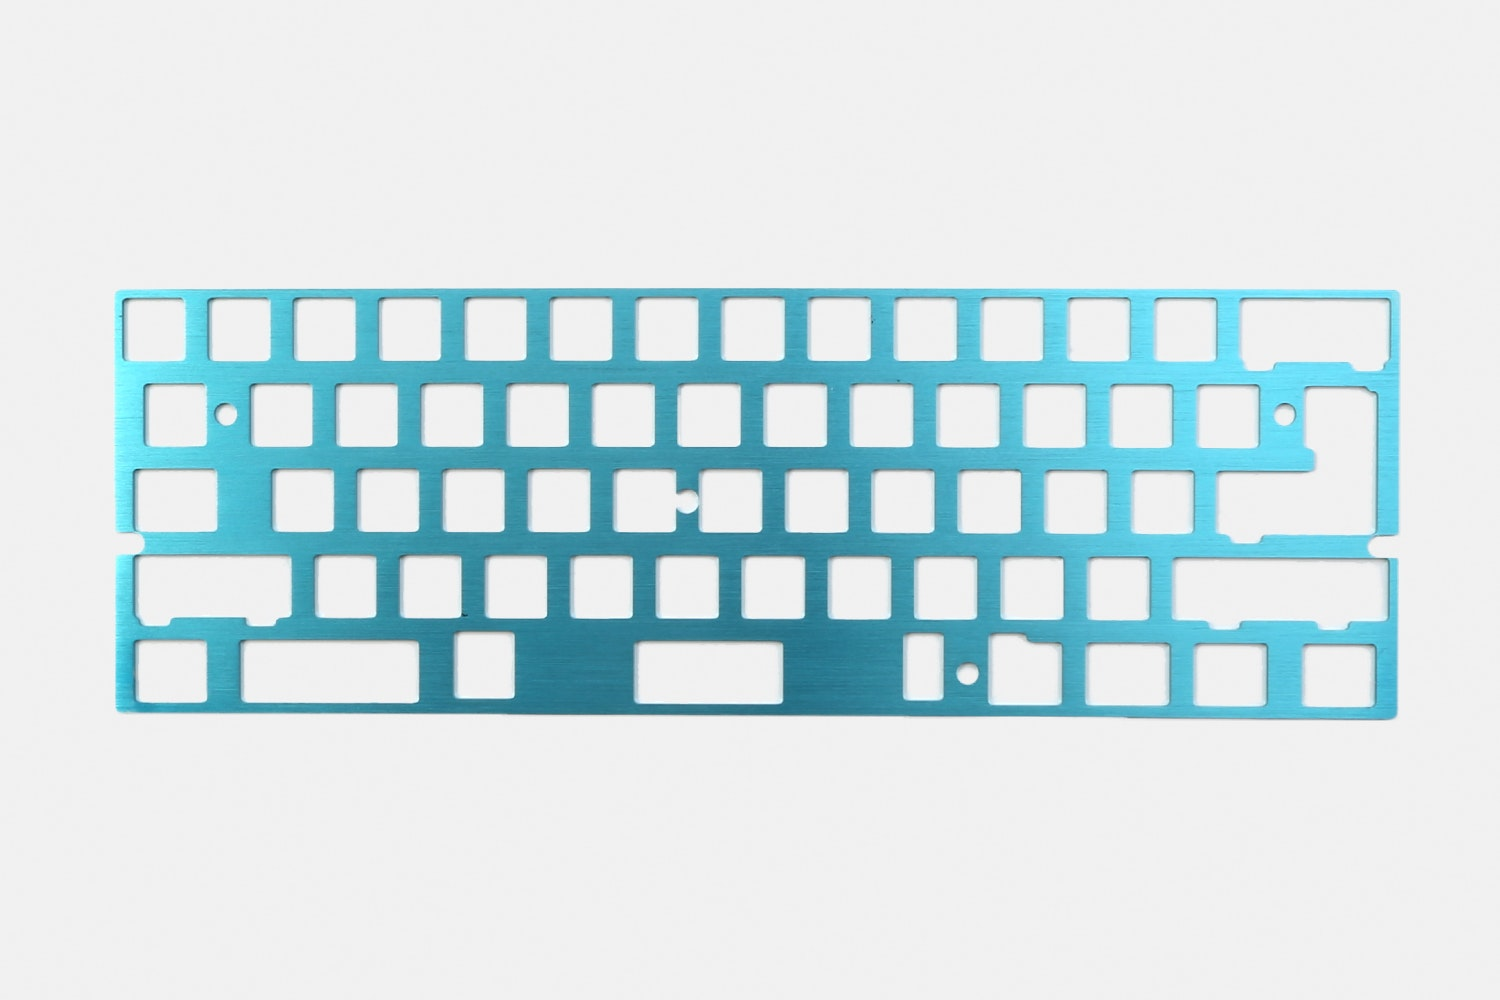 60% Aluminum Mechanical Keyboard Plate